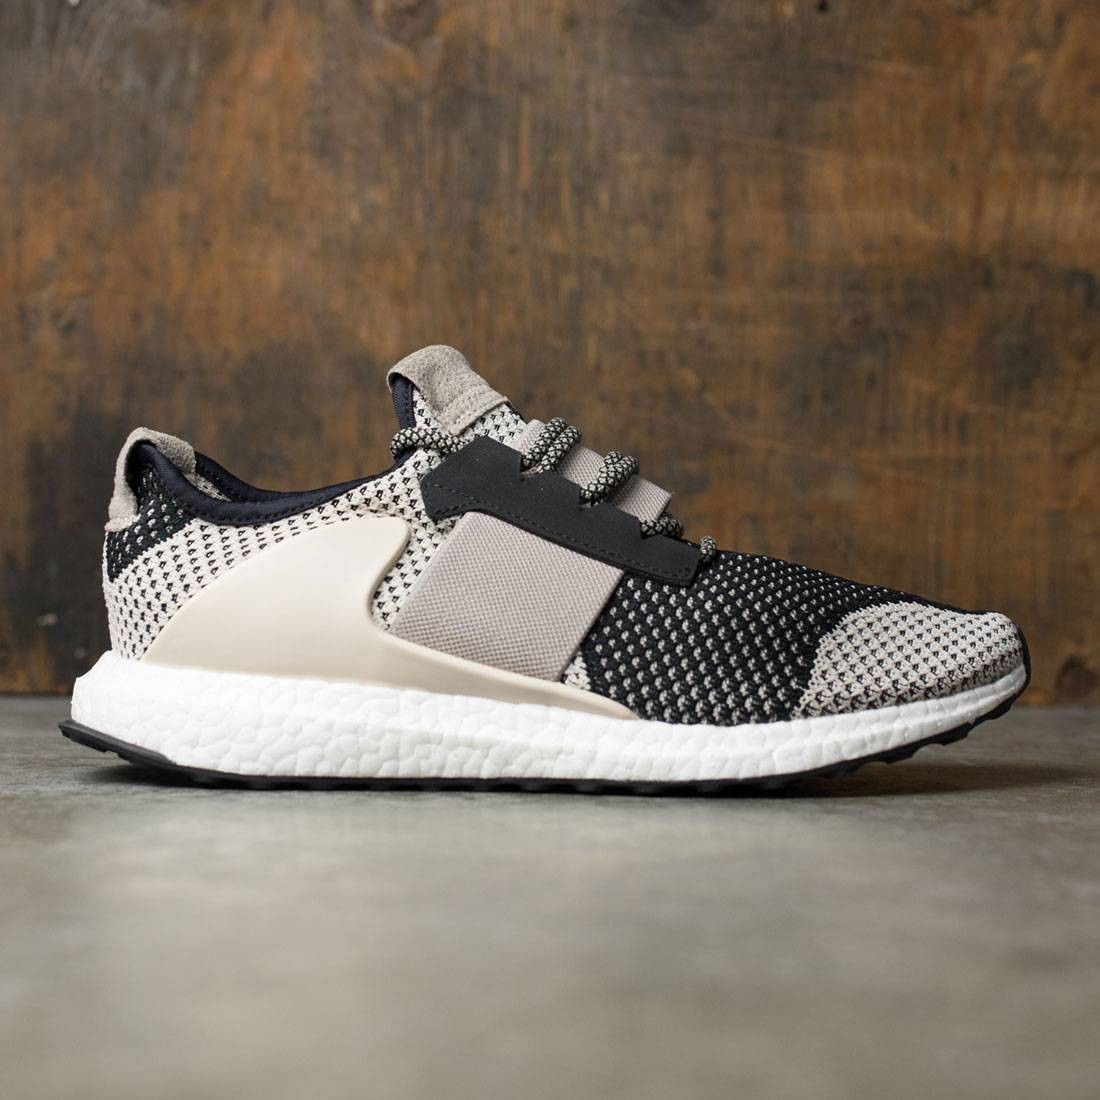 88650653a adidas consortium day one men ado ultraboost zg brown clear brown light  brown black